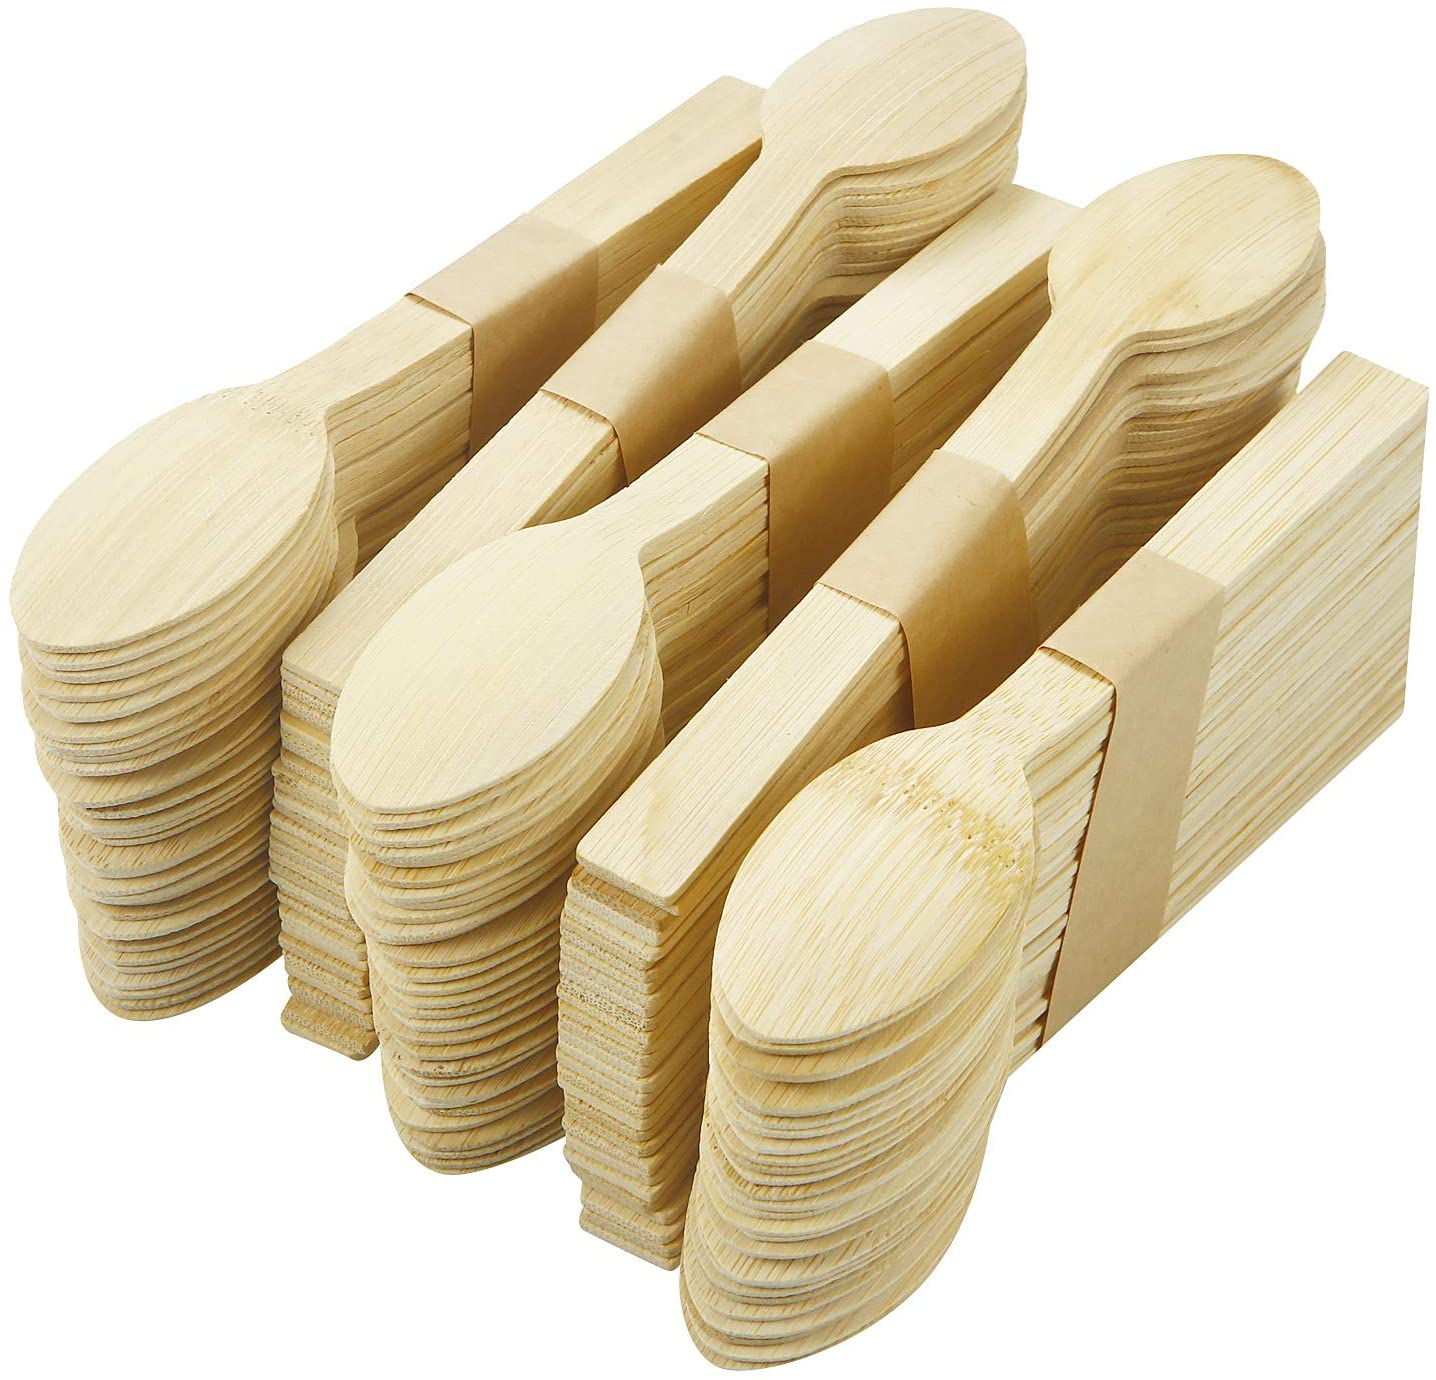 100% Bamboo Disposable Cutlery Set (300 PC Spoon)